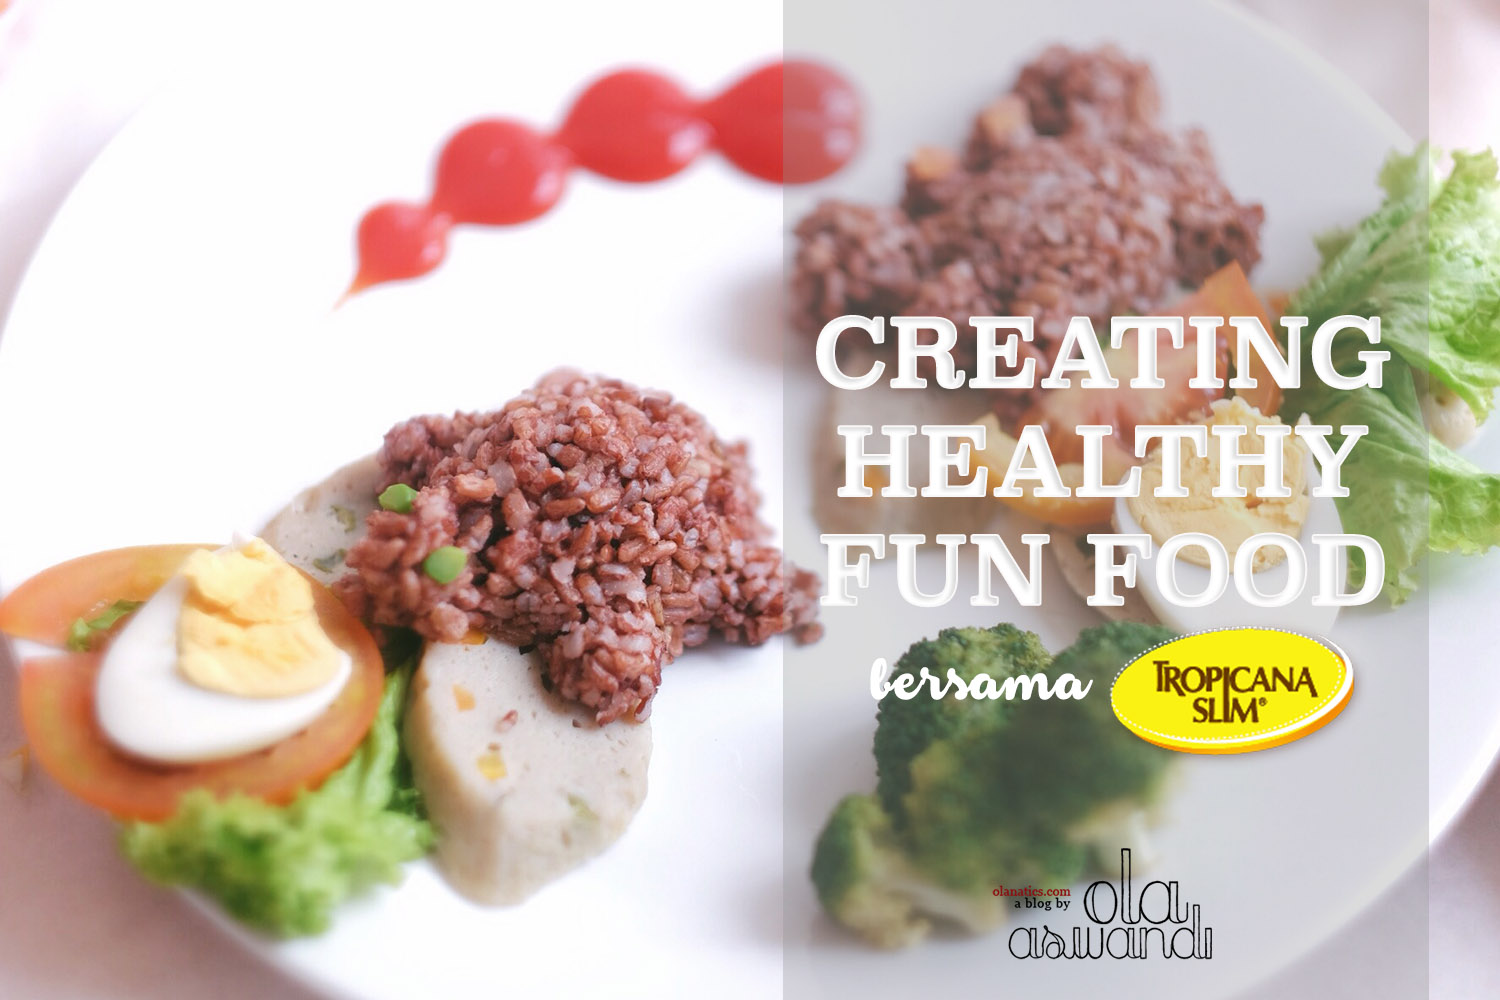 sampul-tropicana-slim Creating Healthy Fun Food Bersama Tropicana Slim